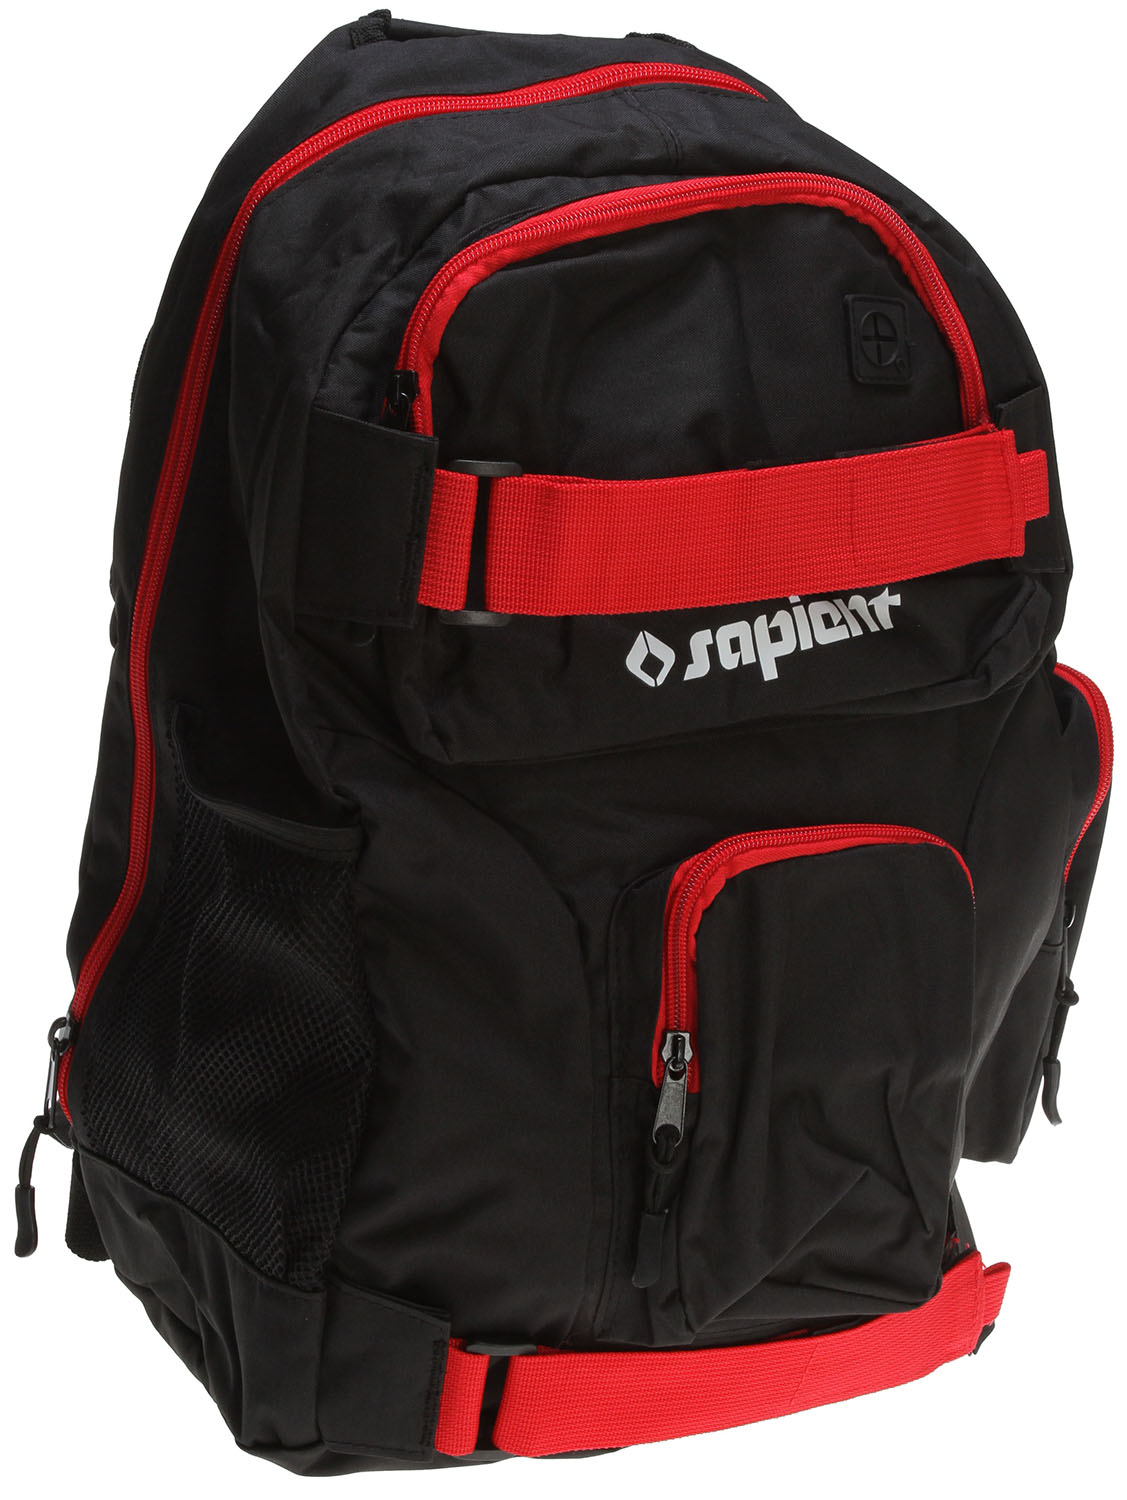 Skateboard Sapient Logo Backpack - $39.95